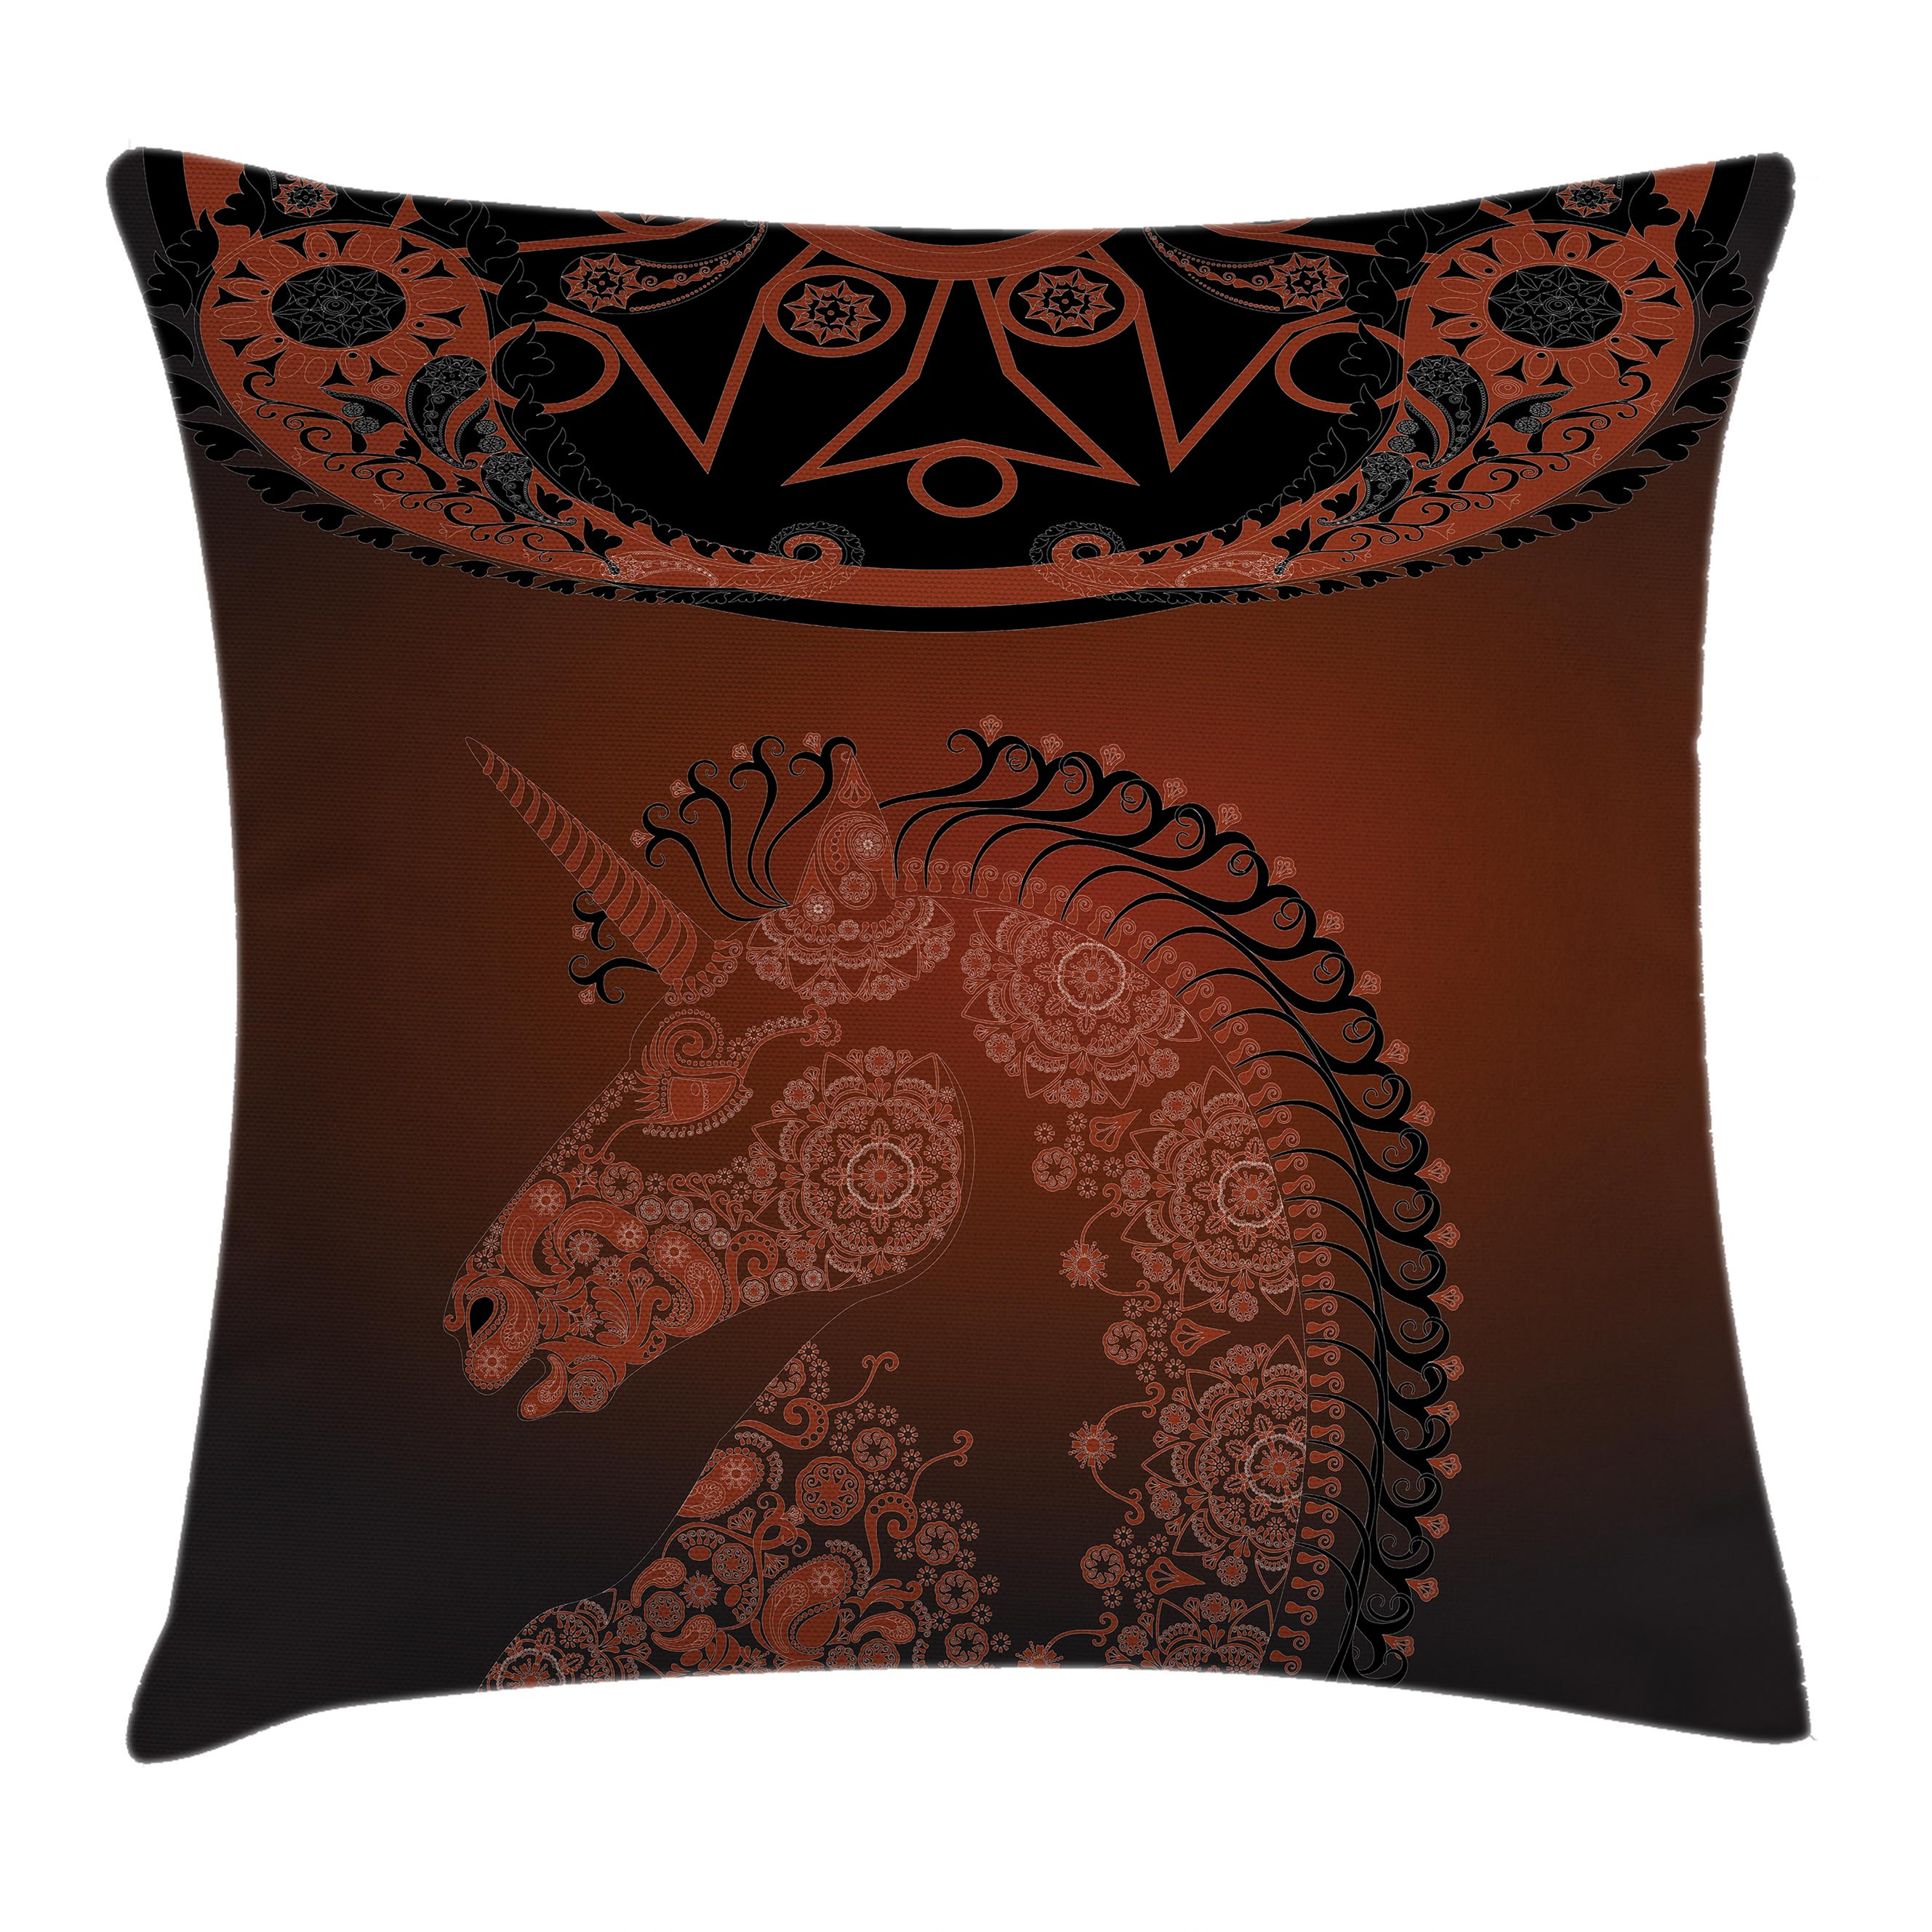 Unicorn Home and Kids Decor Throw Pillow Cushion Cover, Ethnic Unicorn Profile with Asian Embellish Lace Mandala Details Decor, Decorative Square Accent Pillow Case, 16 X 16 Inches, Red, by Ambesonne